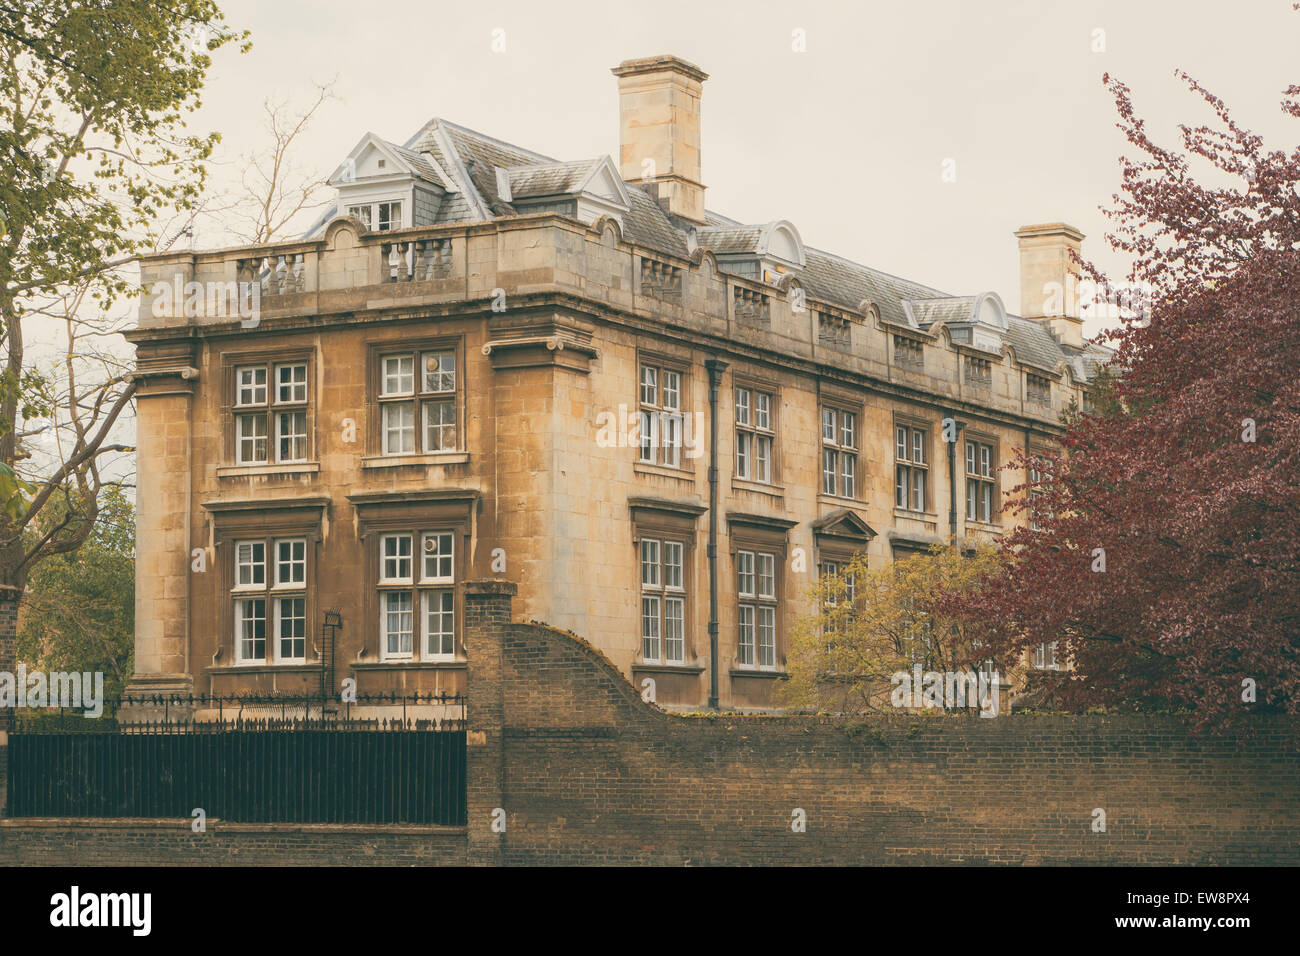 Dating back to the fifteenth century, the college was founded by Lady Margaret Beaufort, mother of King Henry VIII. - Stock Image